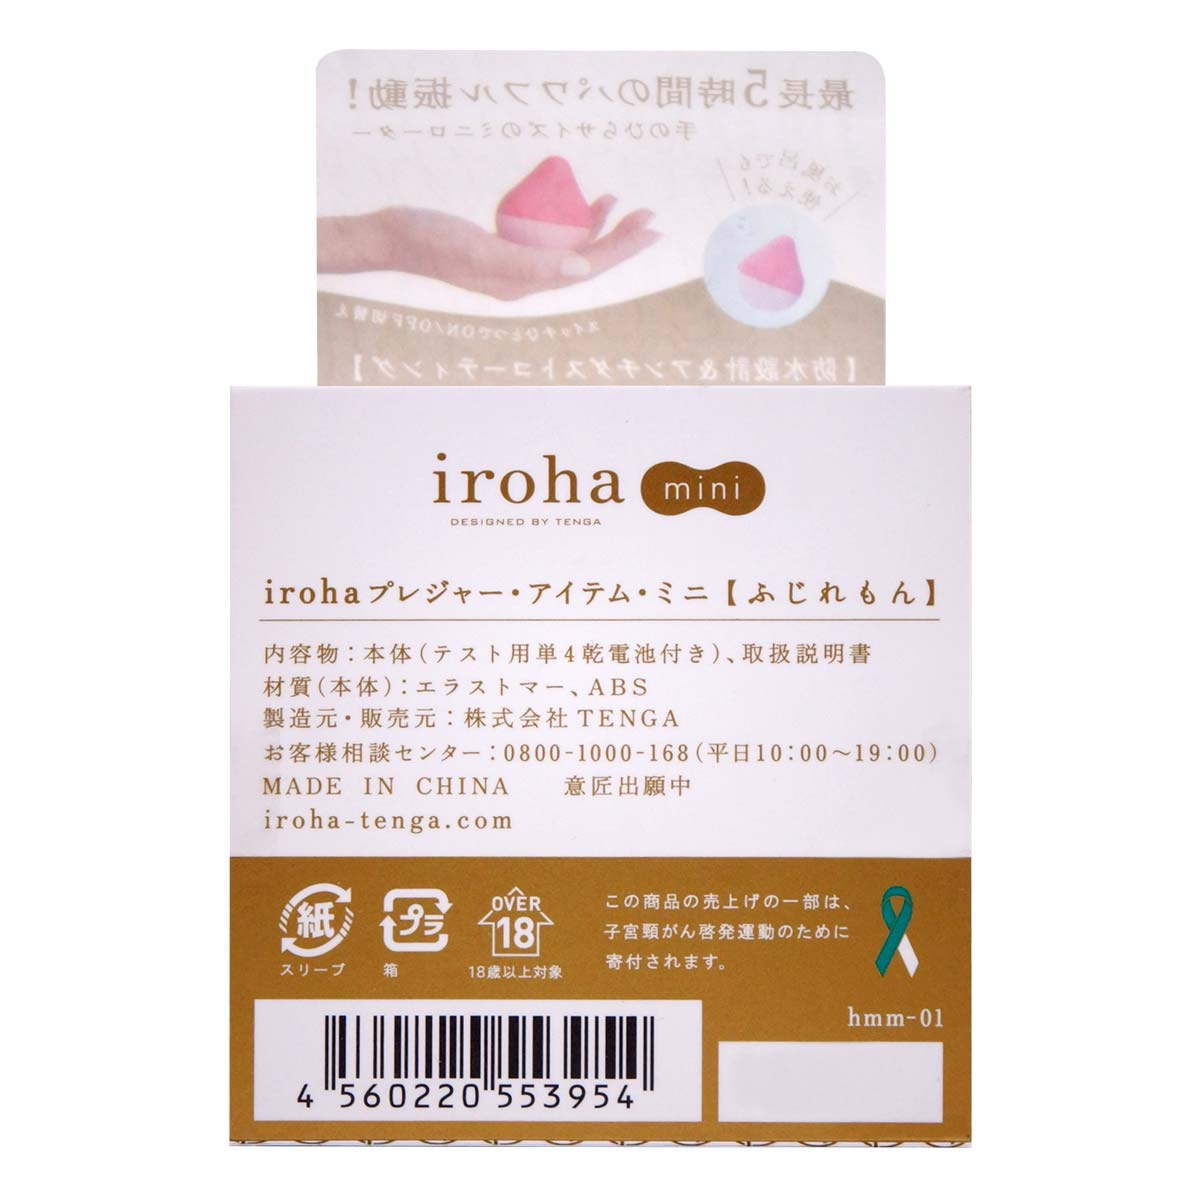 iroha mini FUJILEMON